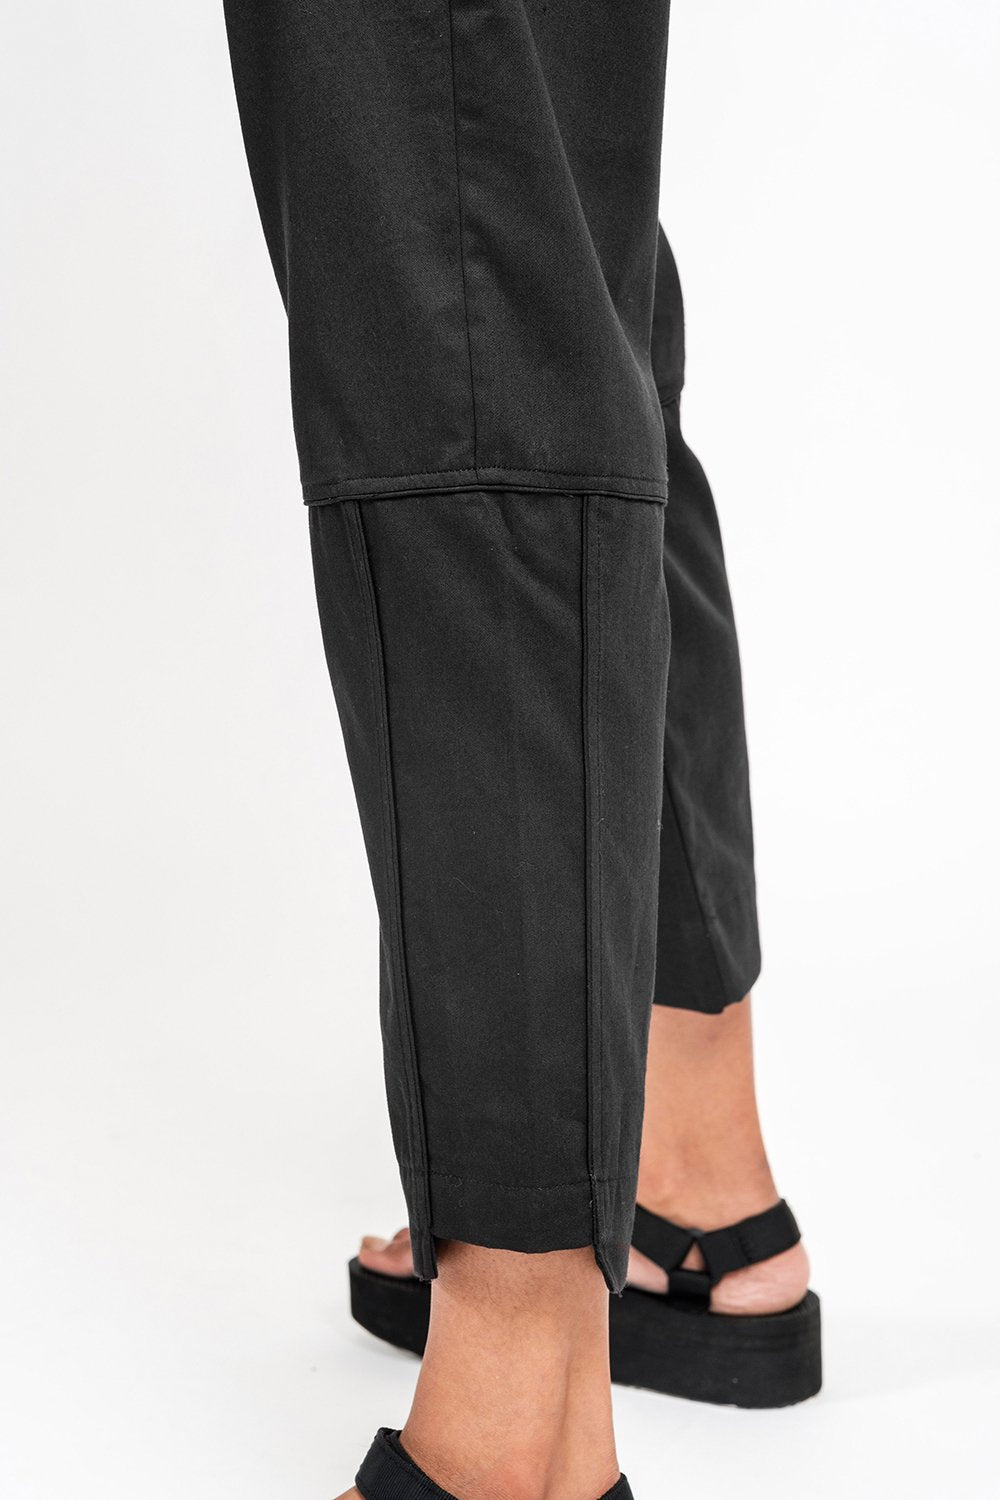 Axis Black Cropped Unisex Trousers